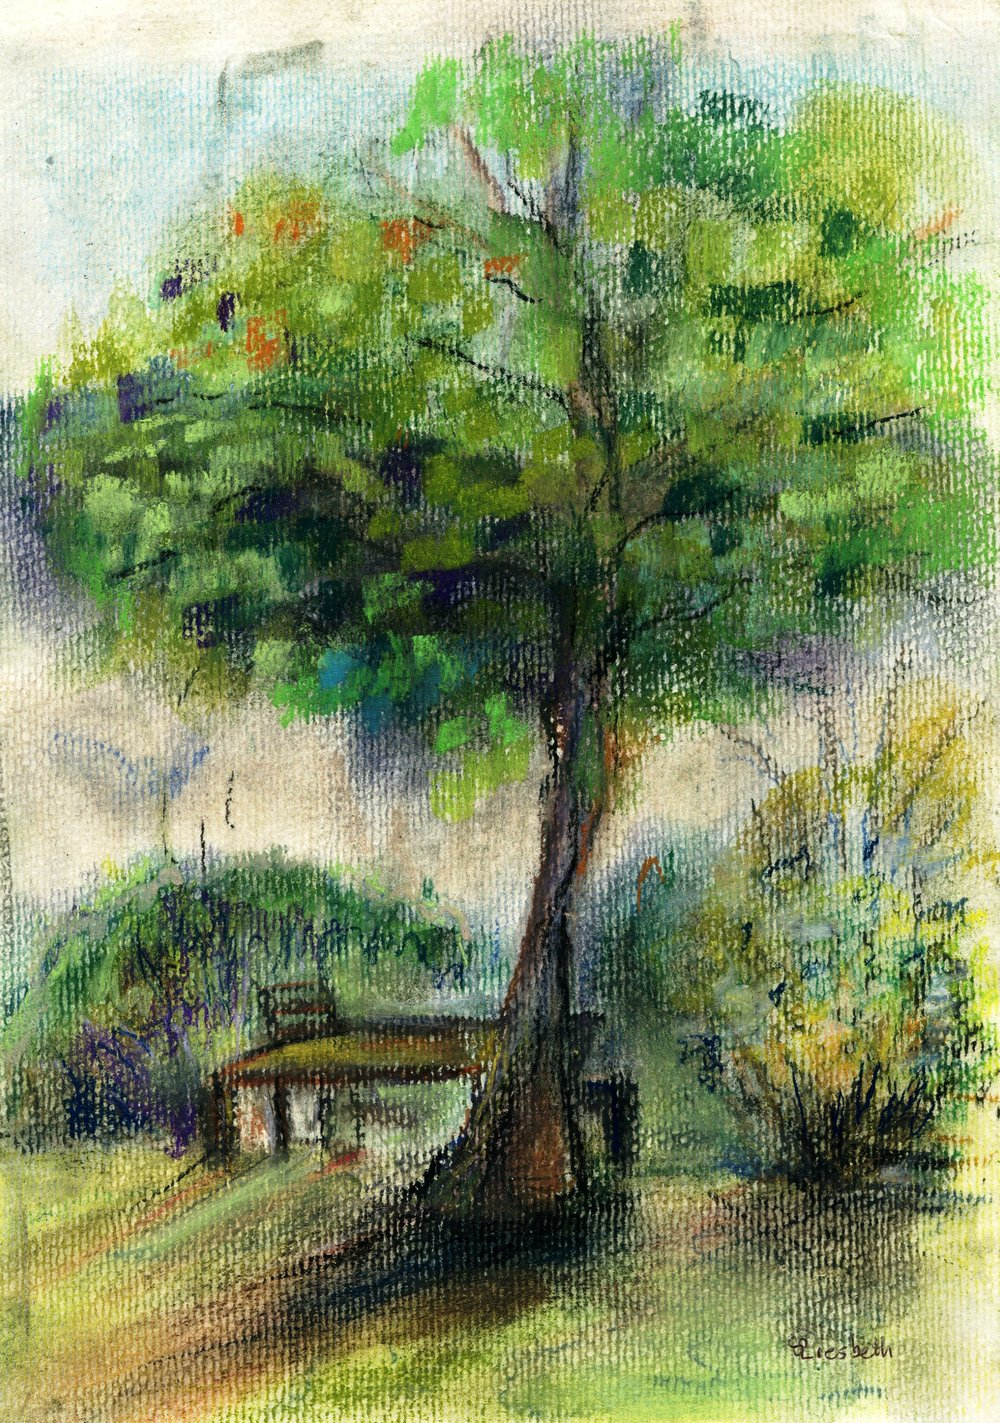 85B LIESBETH GROENEWALD, TREE IN THE GARDEN, PASTEL ON PAPER